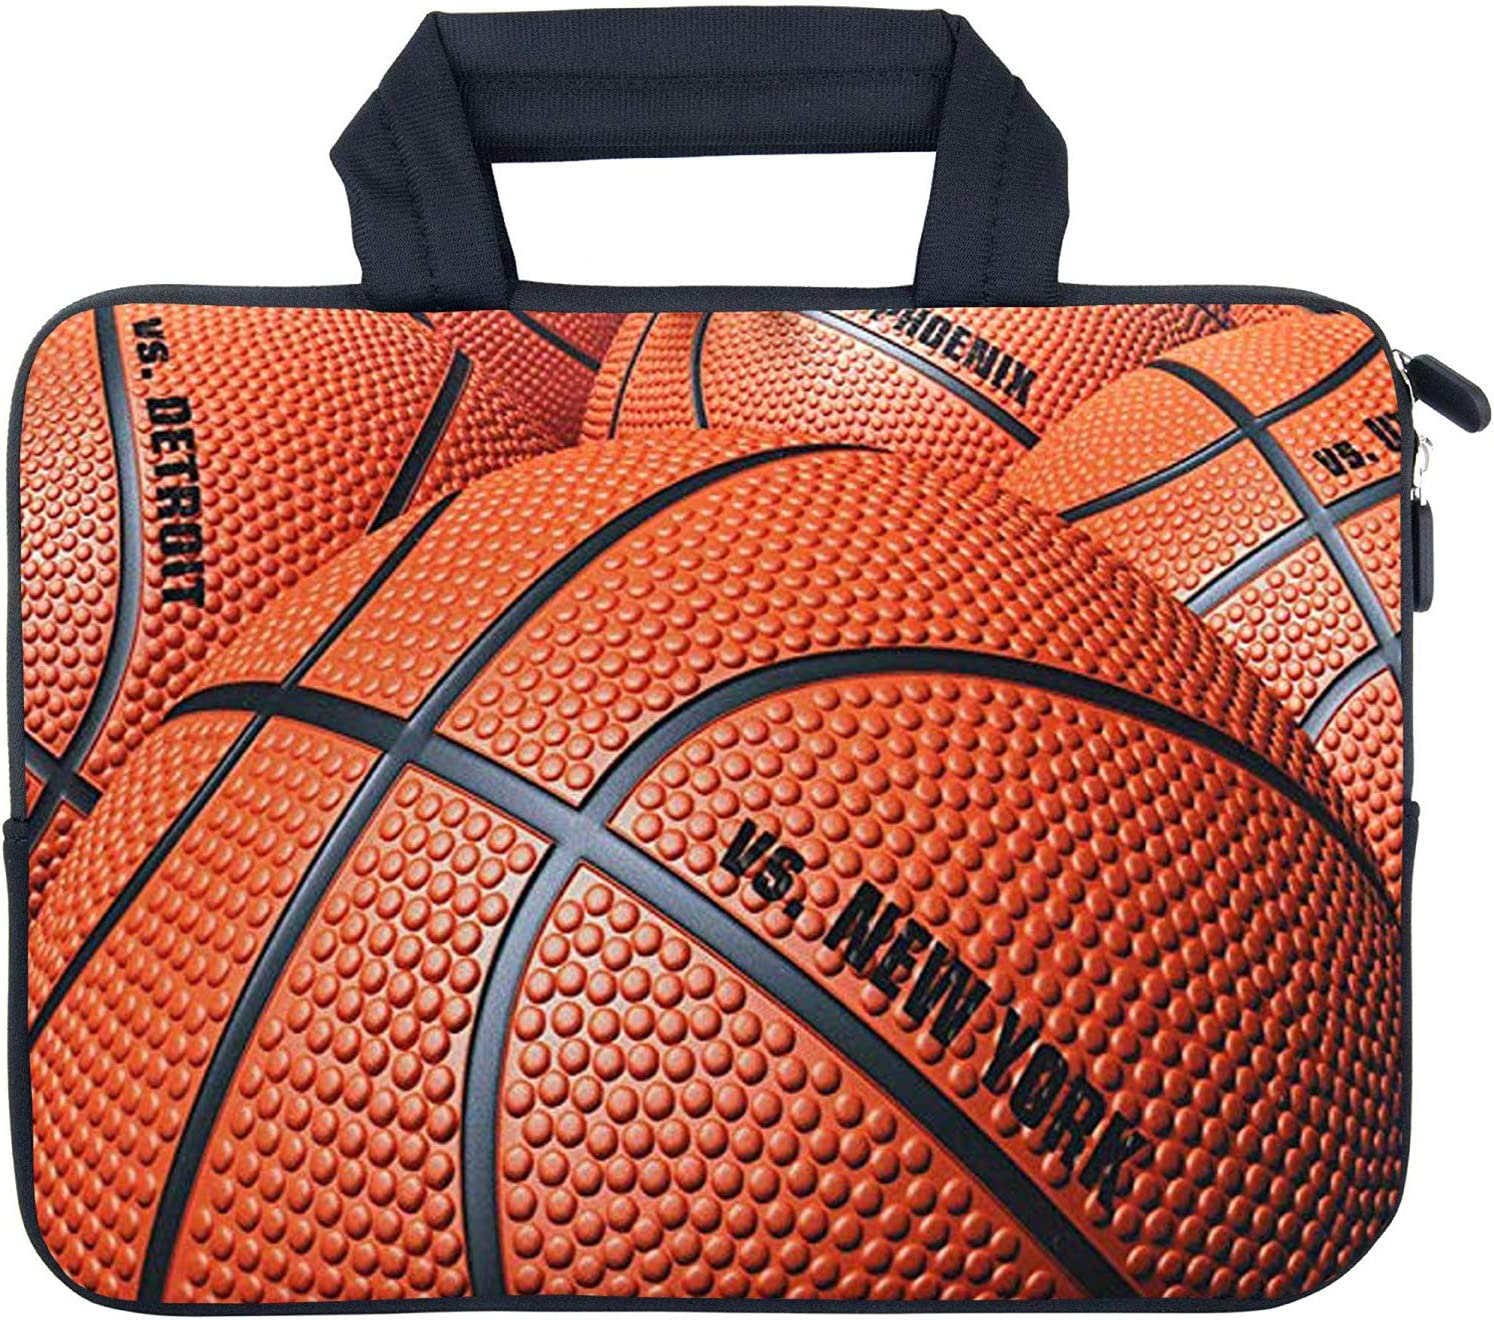 """AMARY Chromebook Sleeve 11.6"""" 12"""" 12.1"""" 12.5 inch Laptop case Chromebook Bags MacBook air Sleeve Fit Apple MacBook Air HP DELL Lenovo Asus Samsung (Basketball)"""